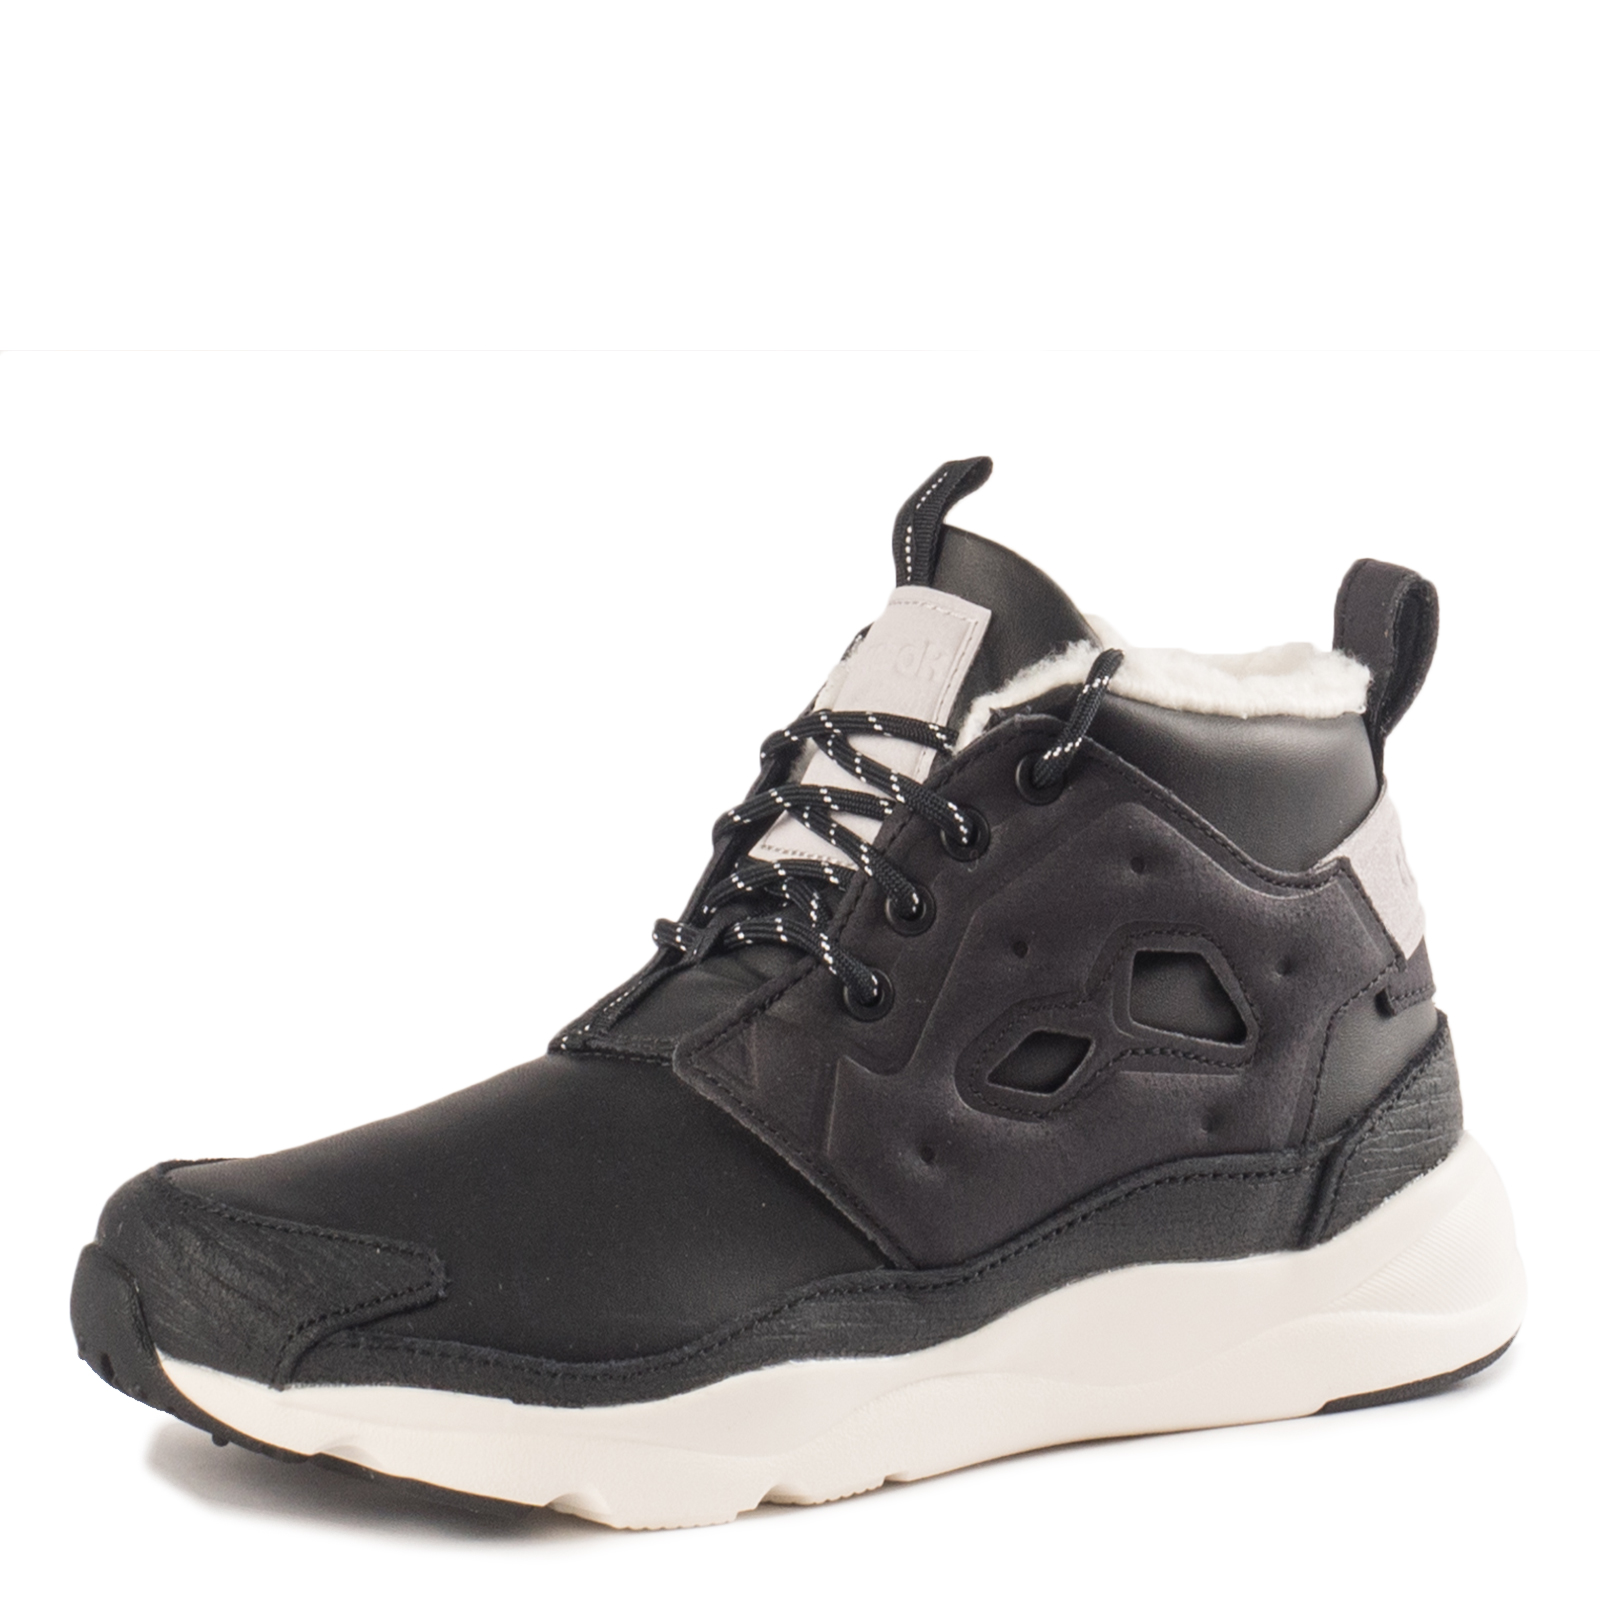 Available from 10.11 REEBOK running shoes BS5398